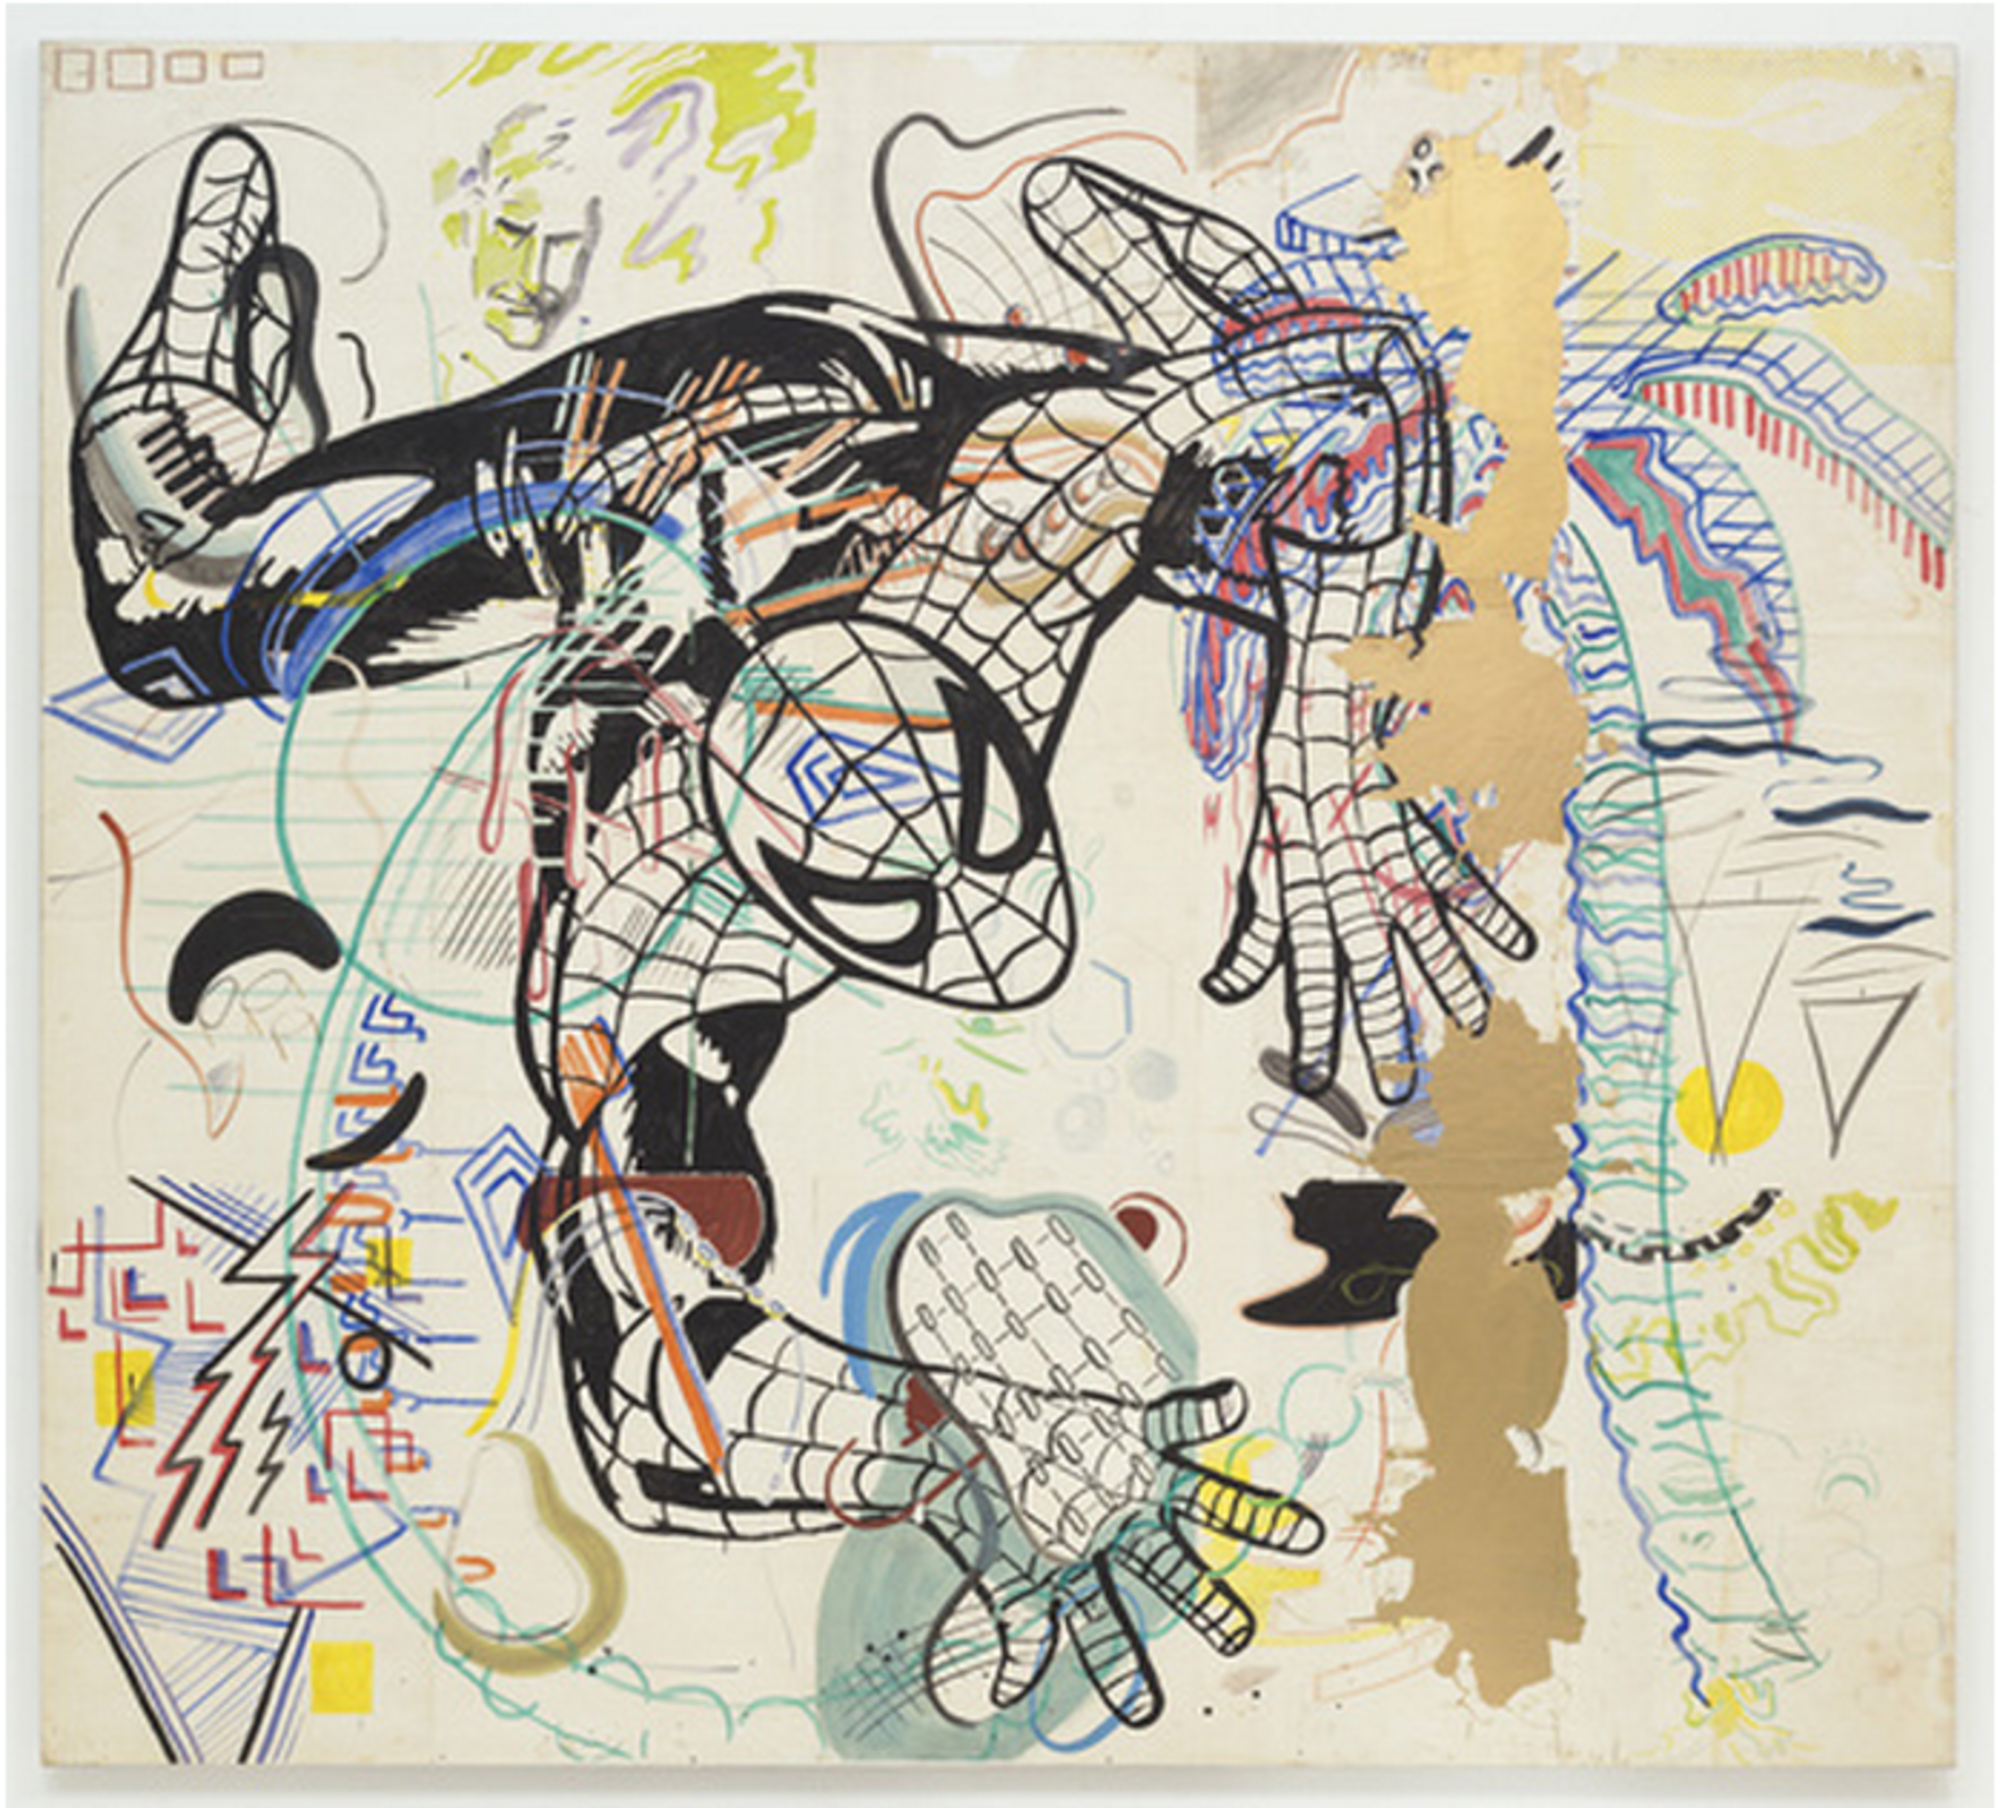 "Sigmar Polke. Spiderman. 1971-74. Cut-and-pasted painted papers on canvas, 9' 3 1/4"" x 10' 3"" (282.6 x 213.4 cm). Purchased with funds given by Leon D. Black, Marie-Josée and Henry R. Kravis, Jo Carole and Ronald S. Lauder, and the Richard E. Salomon Family © 2013 Estate of Sigmar Polke / Artists Rights Society (ARS), New York / VG Bild-Kunst, Bonn, Germany"